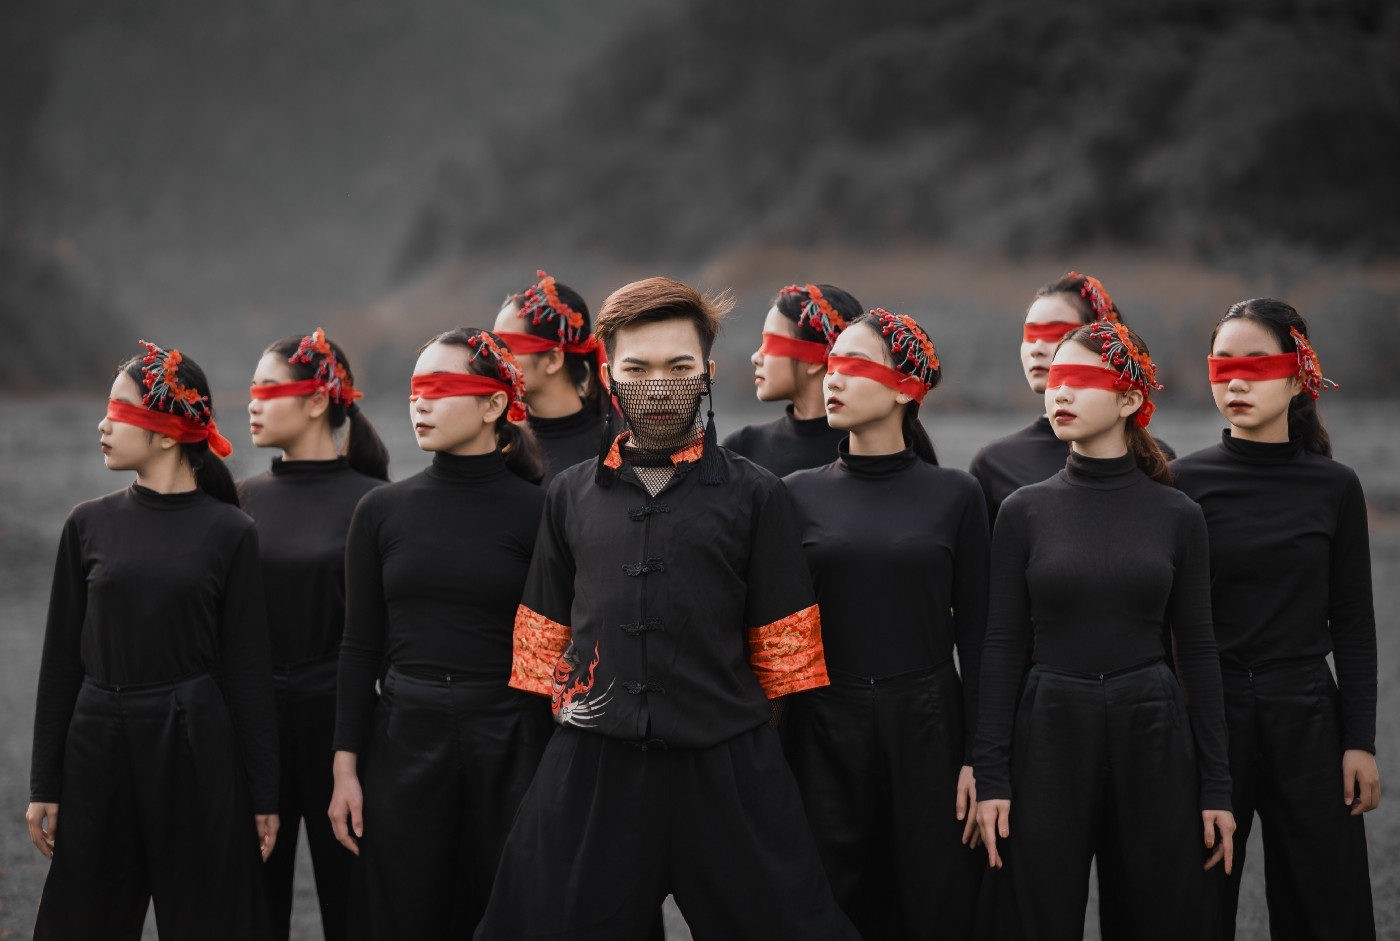 A man surrounded by women wearing black clothes and red blindfolds stand together as a group